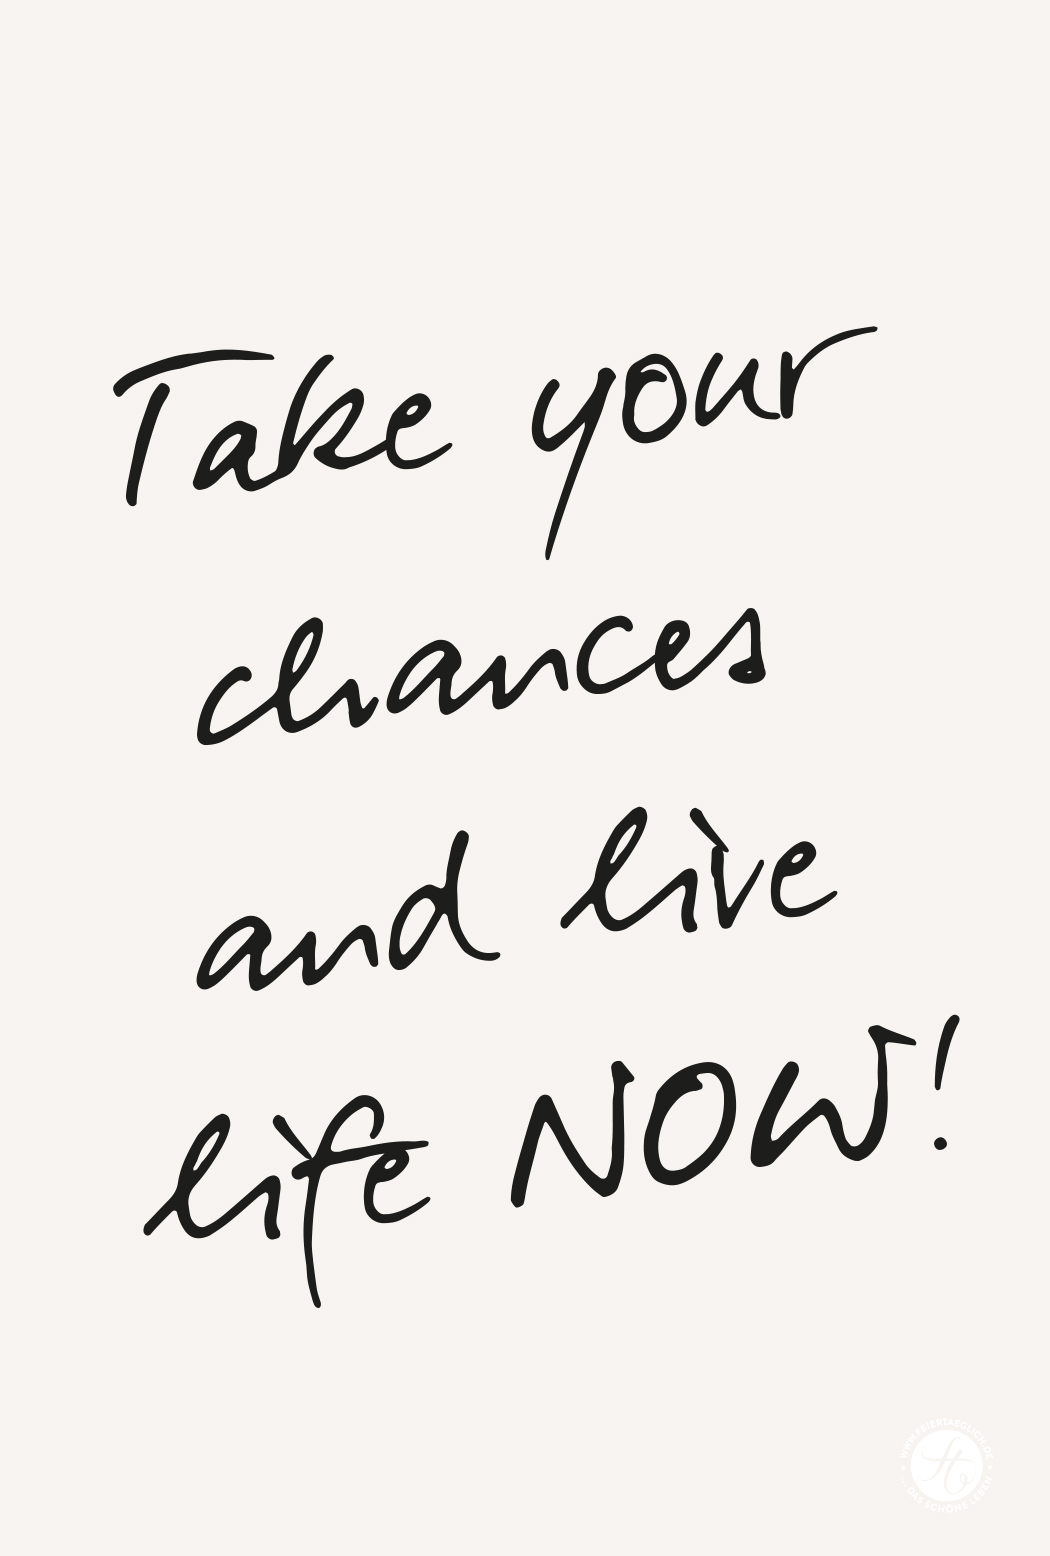 Take your chances and live life now!